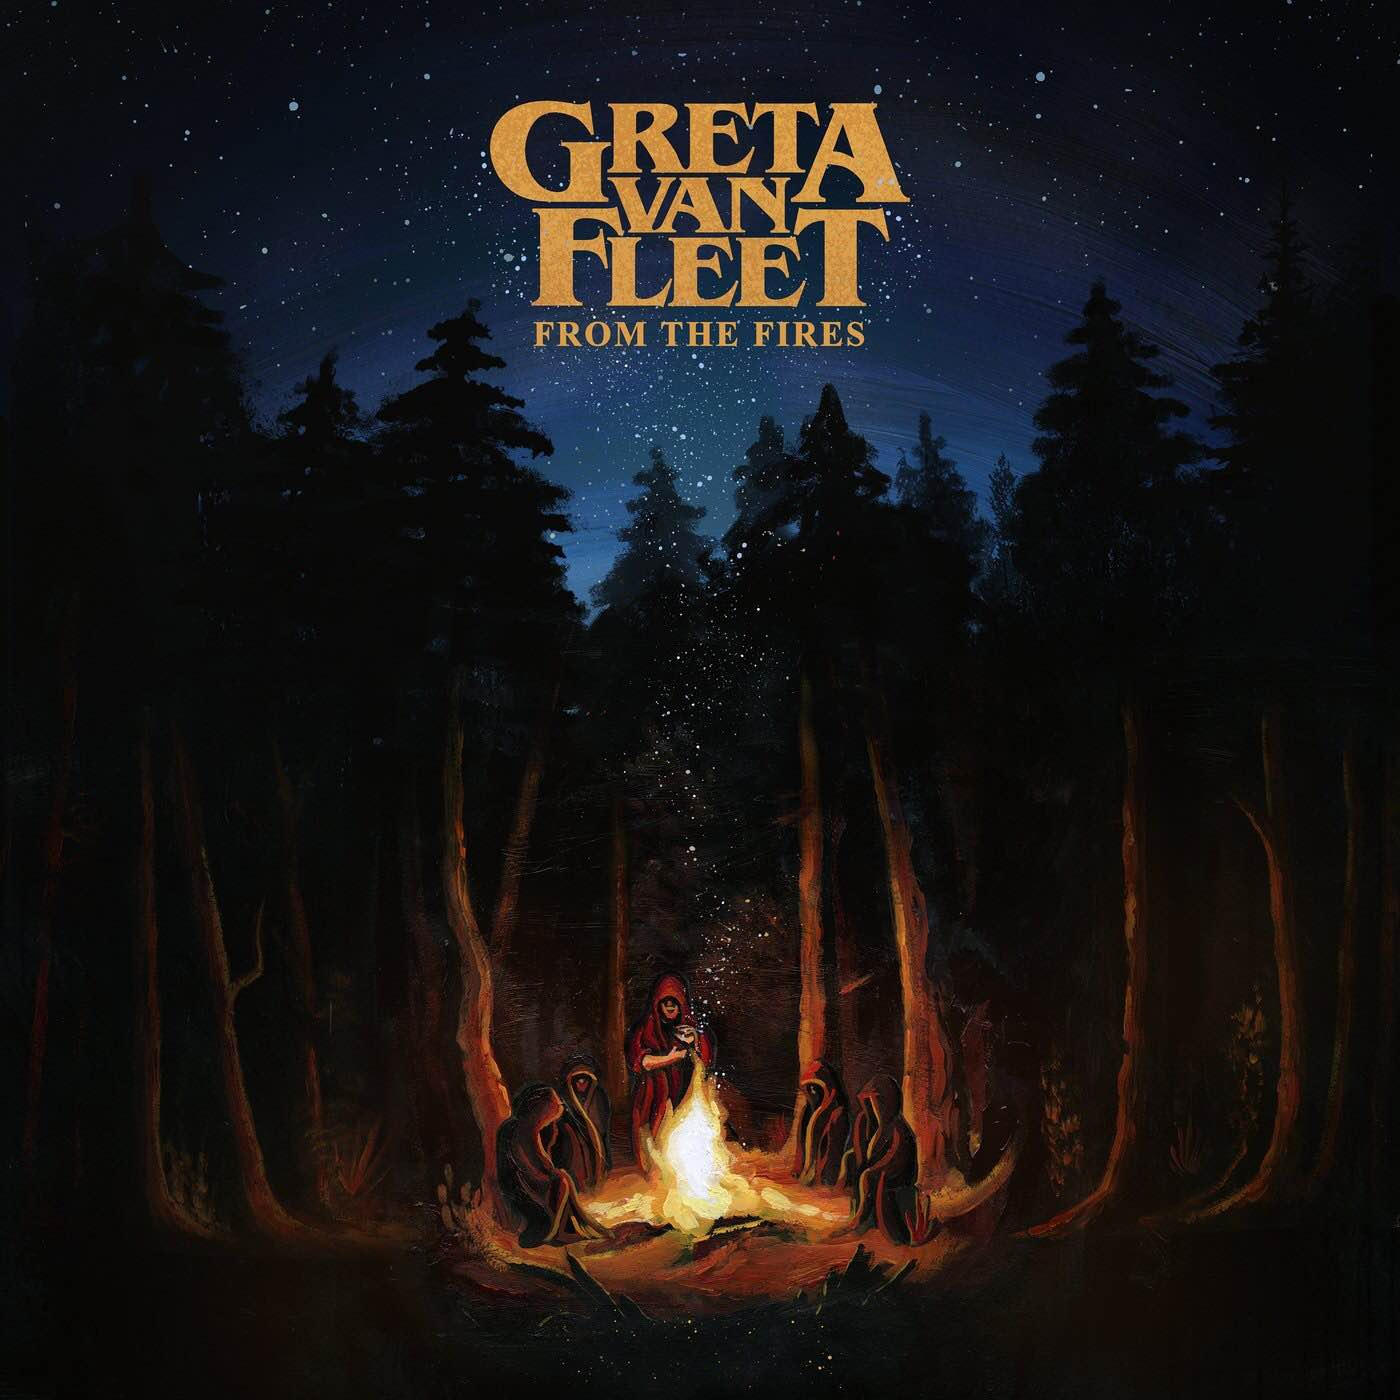 greta-van-fleet-from-the-fires